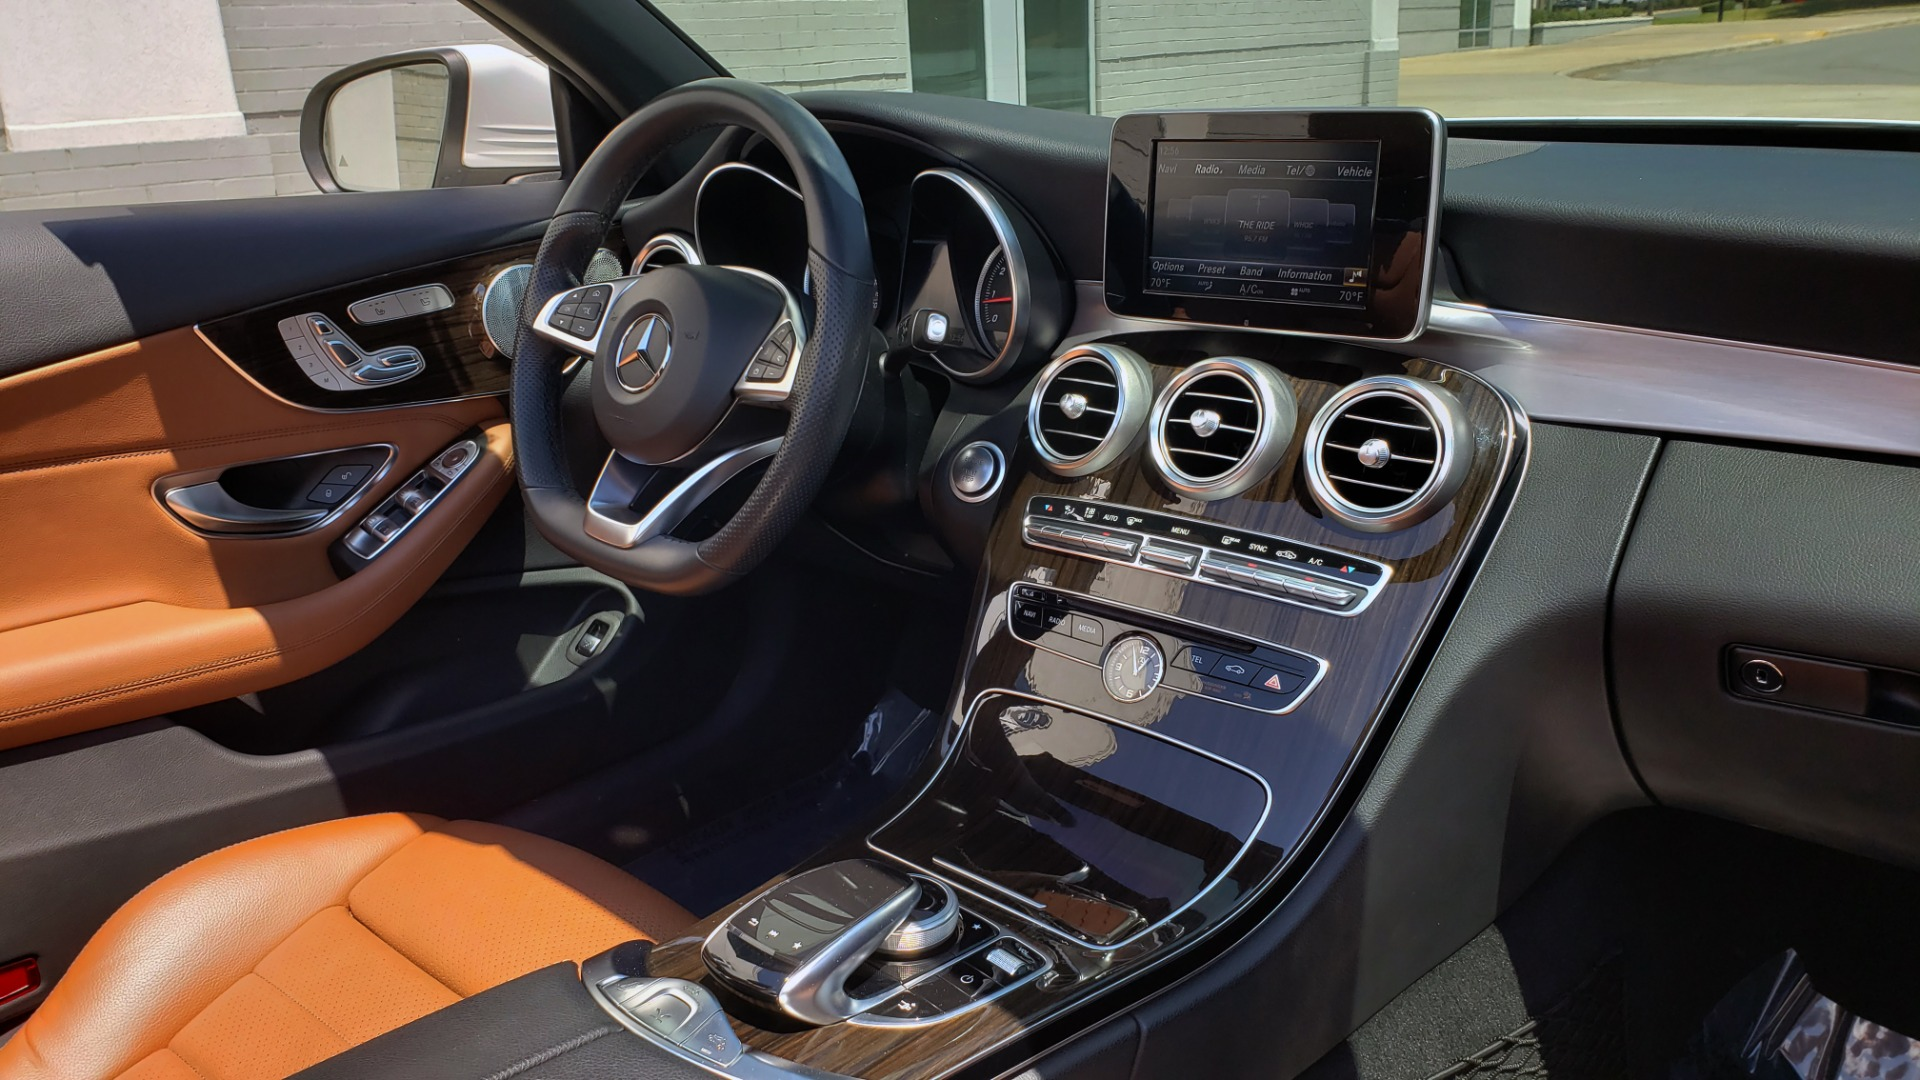 Used 2018 Mercedes-Benz C-CLASS C 300 CABRIOLET PREMIUM / AWD / BURMESTER SND / APPLE / REARVIEW for sale $44,995 at Formula Imports in Charlotte NC 28227 29